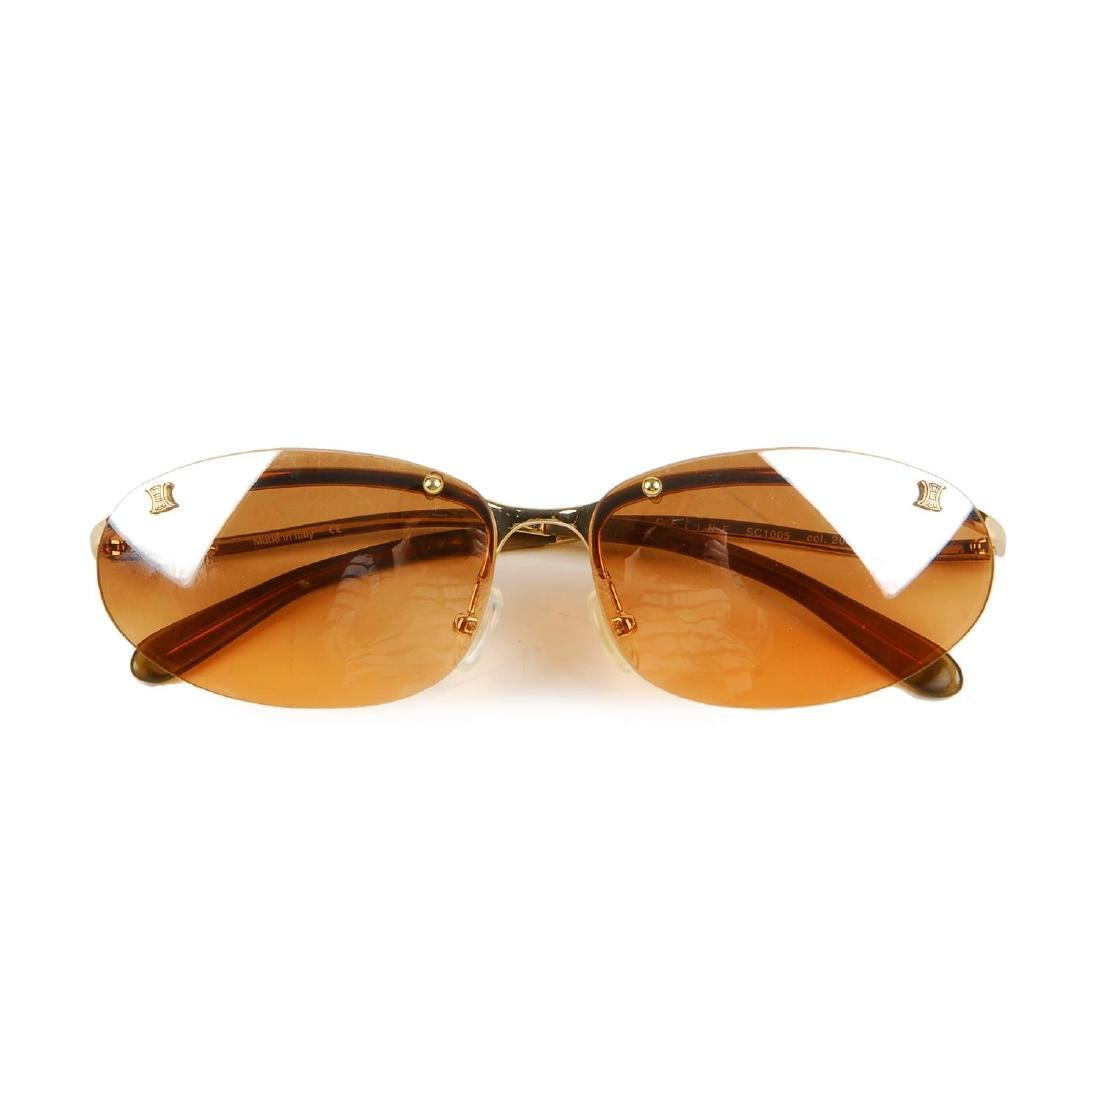 CÉLINE - a pair of rimless sunglasses. Designed with